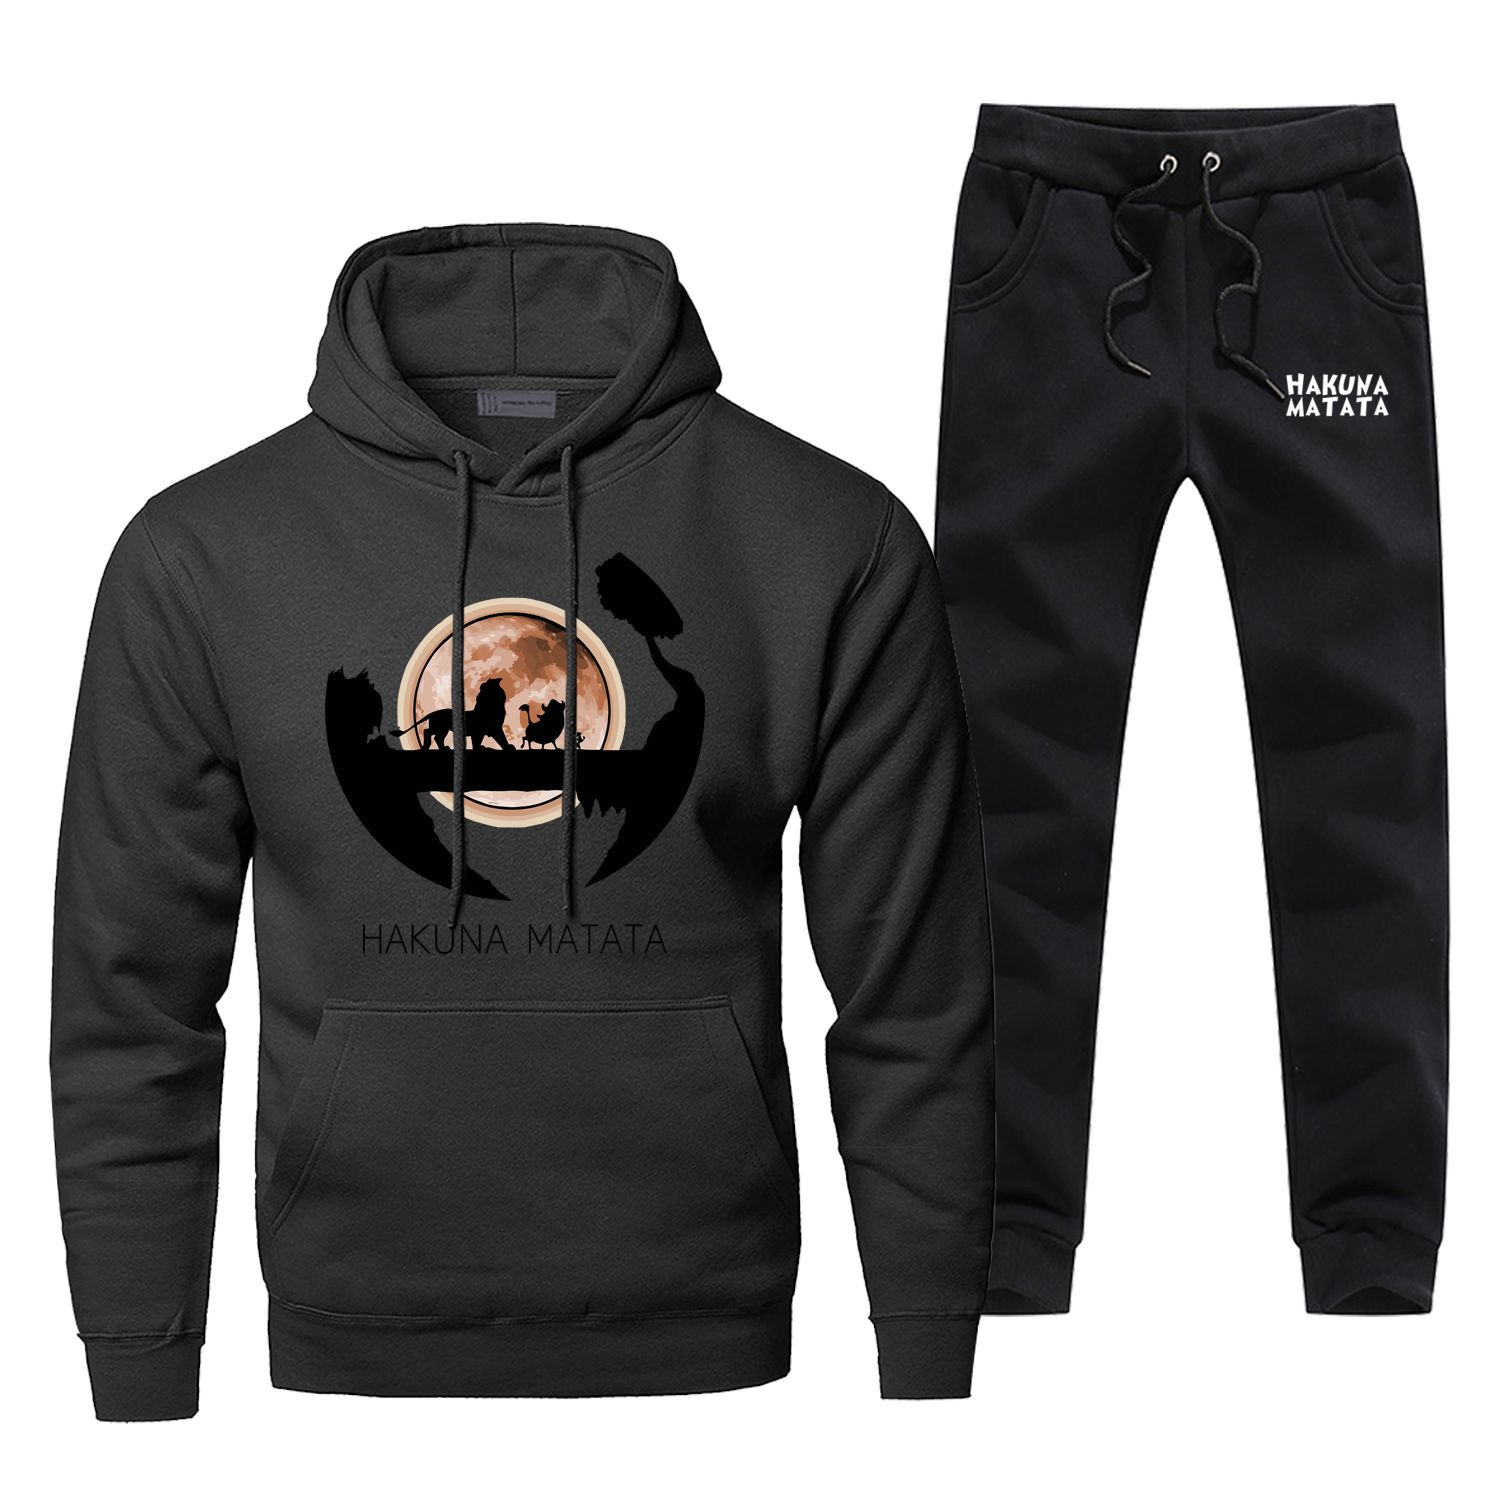 The Lion King Mens Hoodies Sets Two Piece Pant Hakuna Matata Hoody Sweatshirt Sweatpants Streetwear Sportswear Simba Sweatshirts